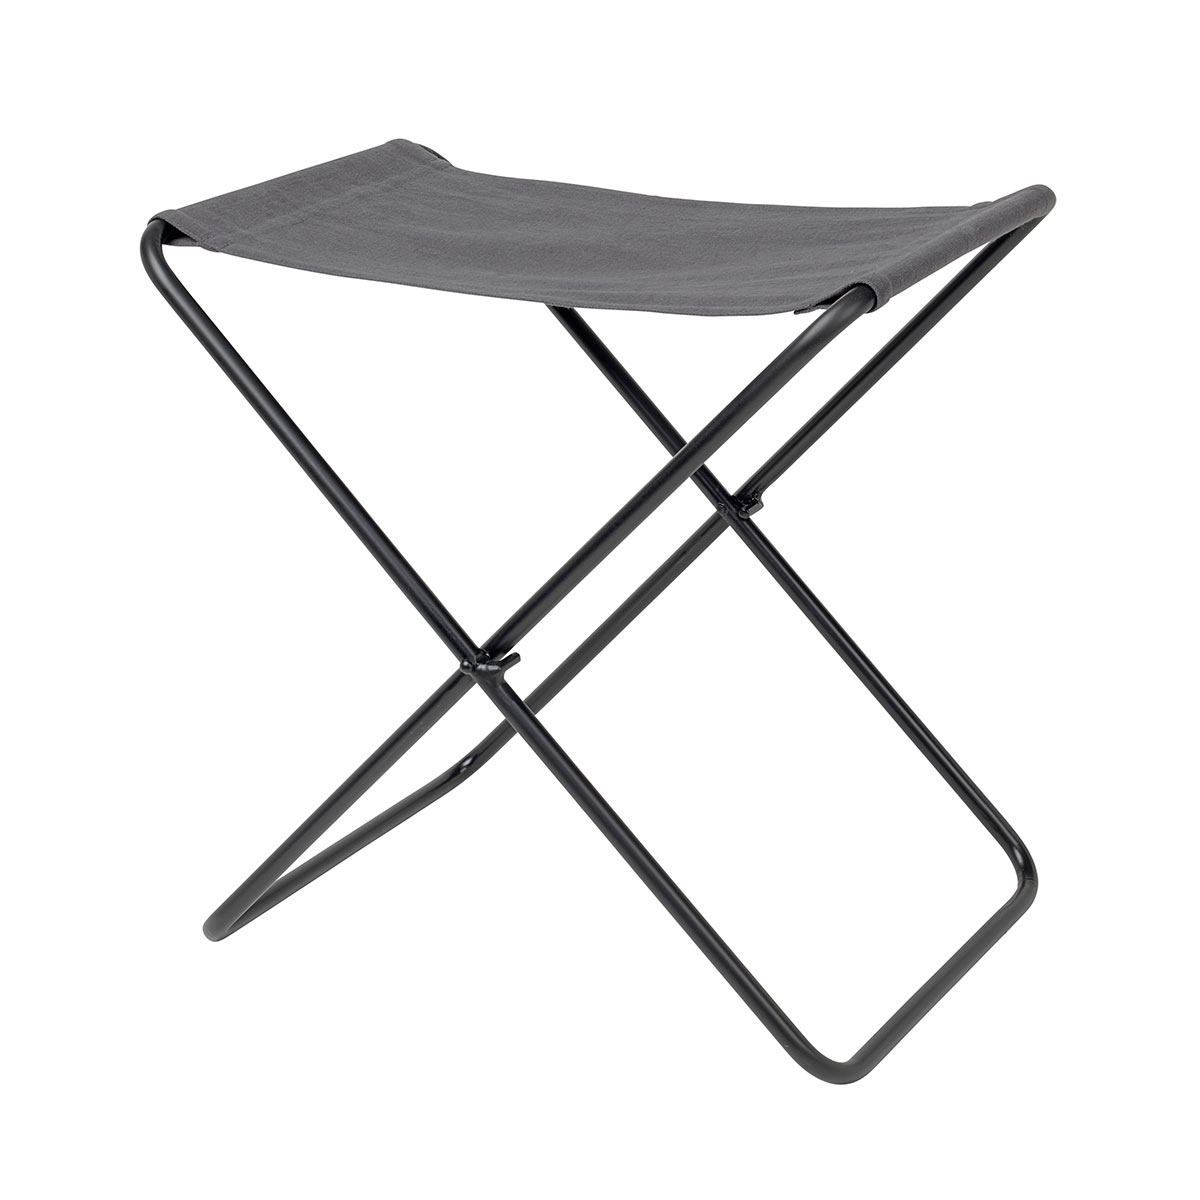 Stupendous Canvas And Metal Folding Stool Nola By Broste Copenhagen Camellatalisay Diy Chair Ideas Camellatalisaycom